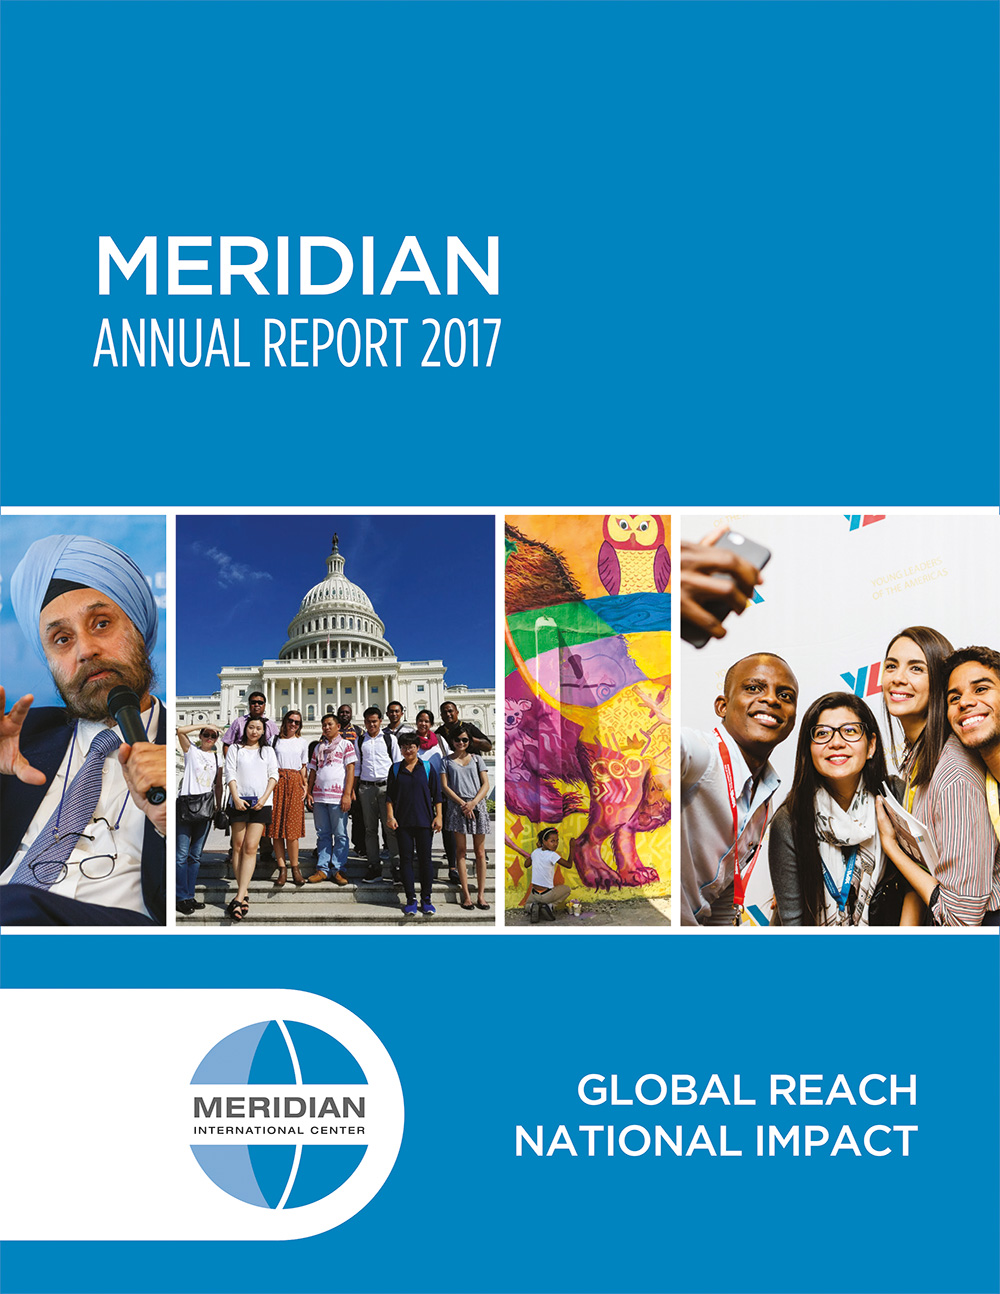 Meridian Annual Report 2017